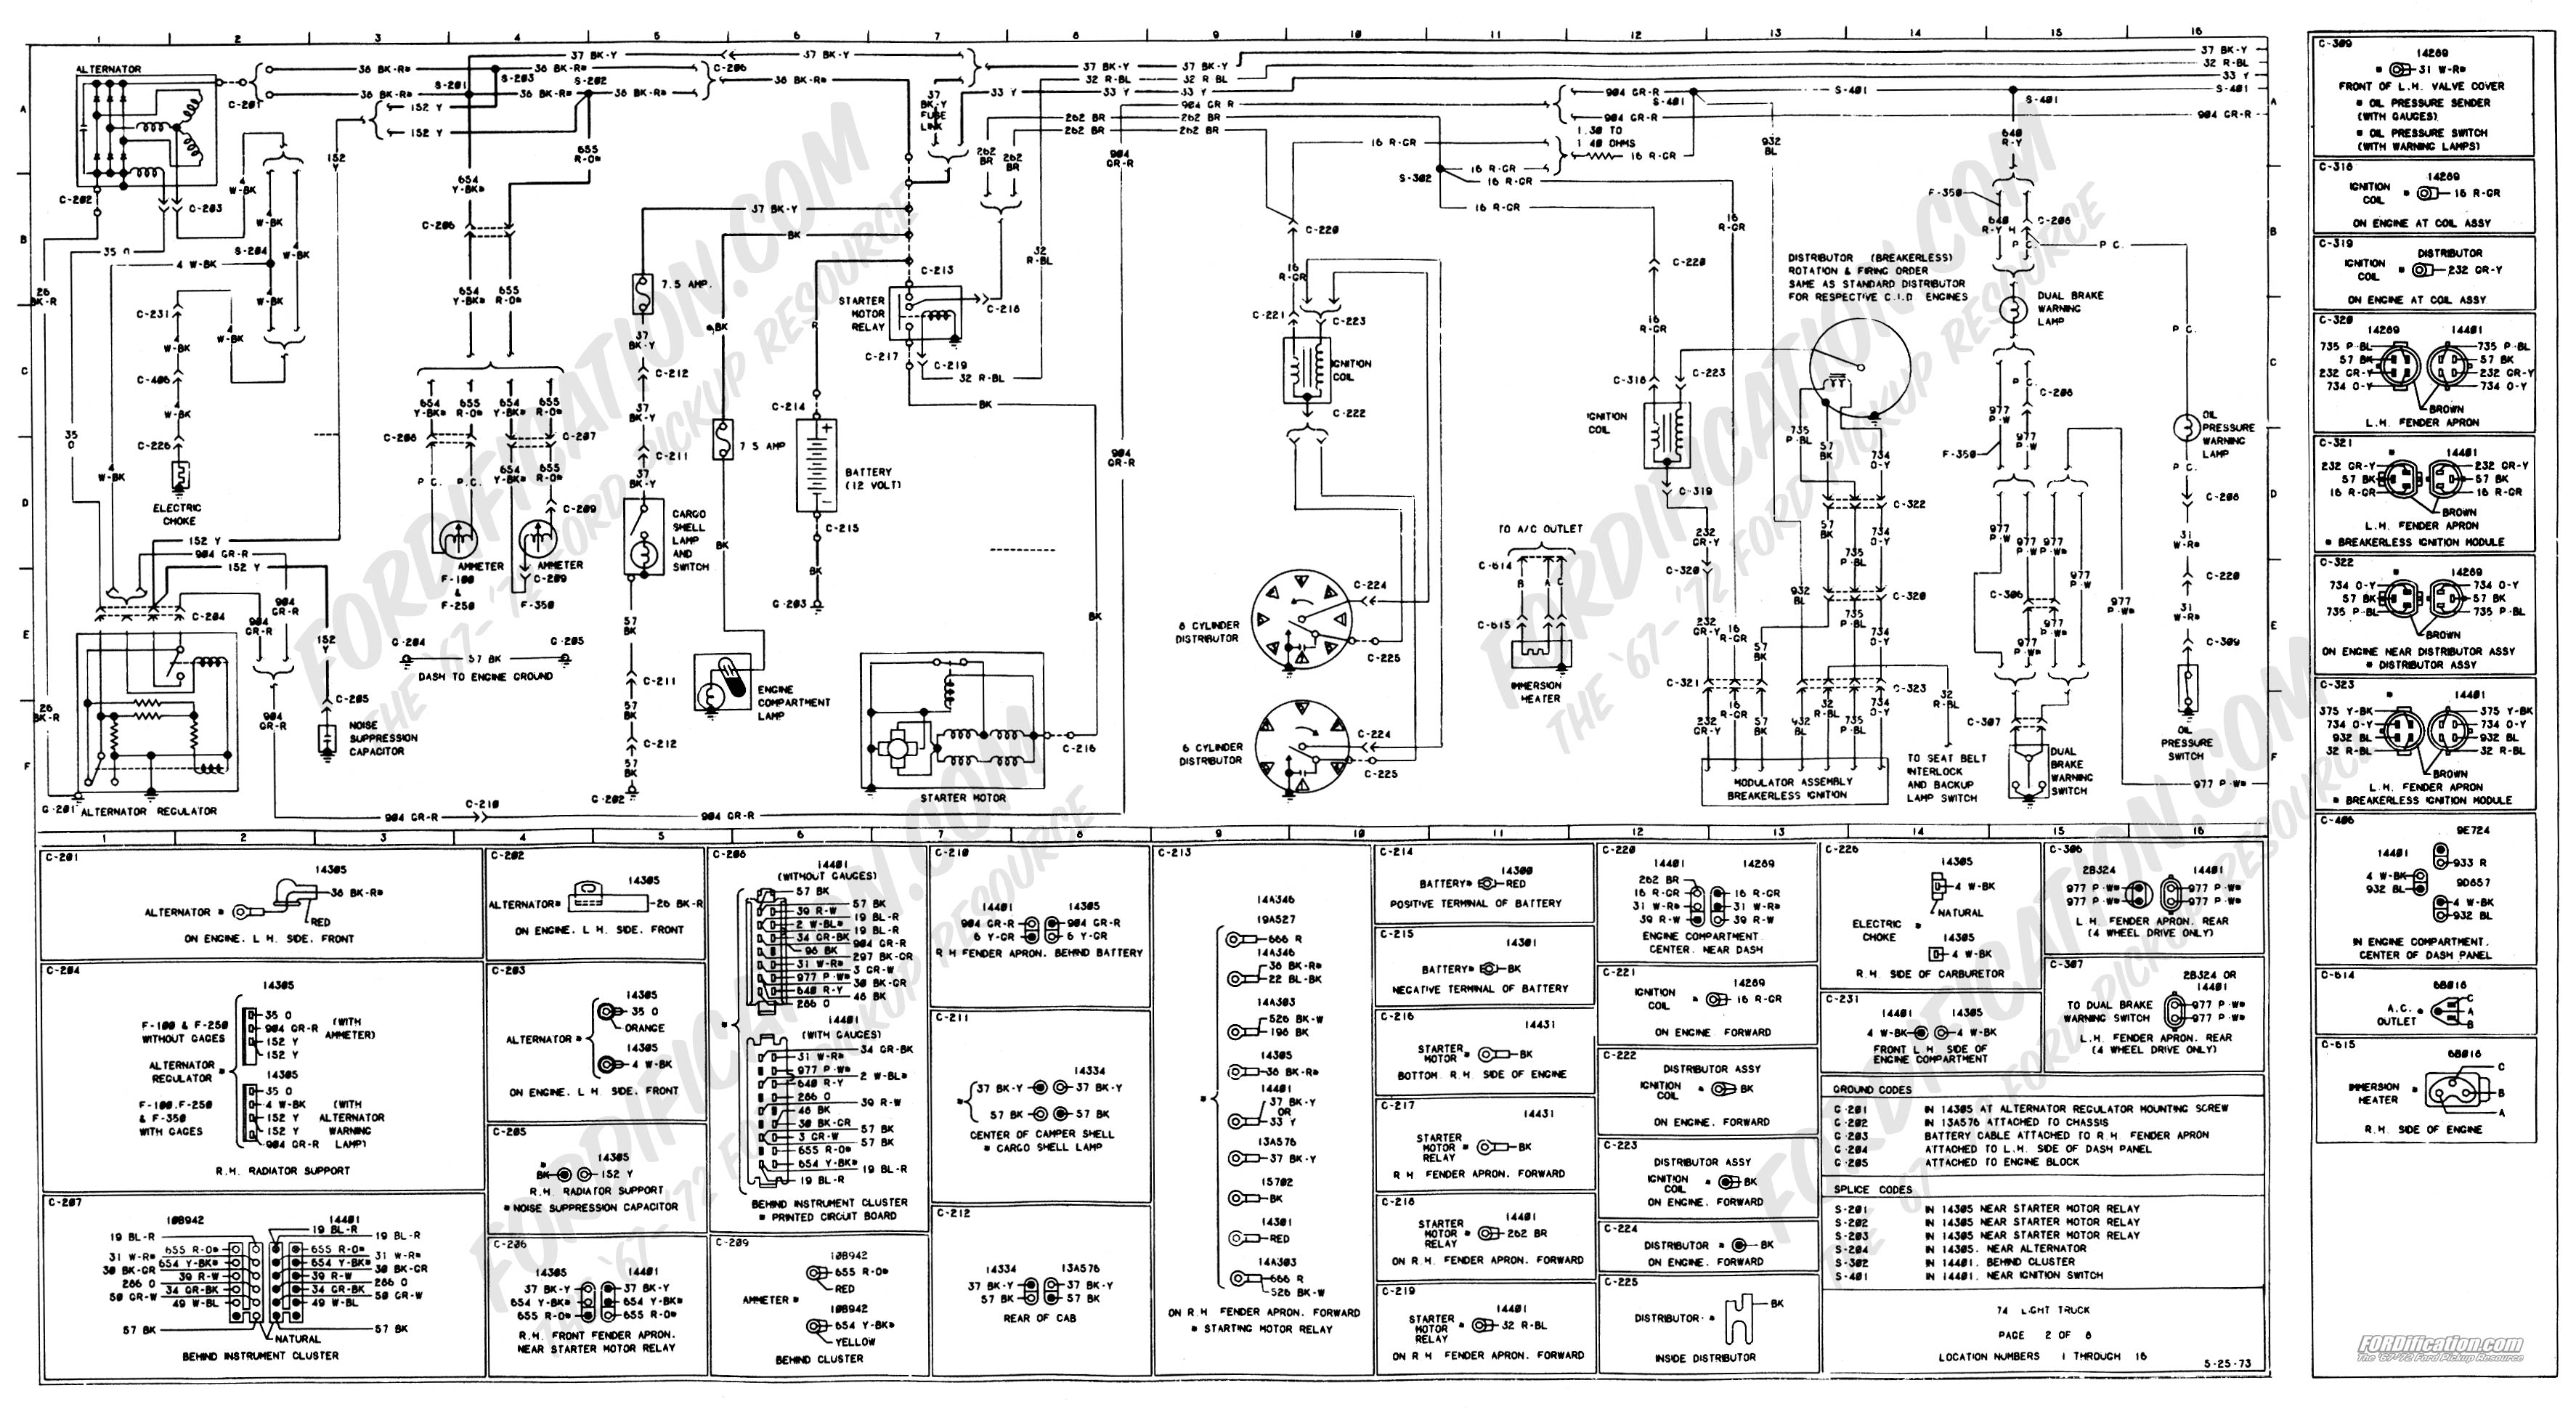 1980 Ford F800 Dump Truck Wiring Diagram Block And Schematic 1954 F600 1973 1979 Diagrams Schematics Fordification Net Rh 1977